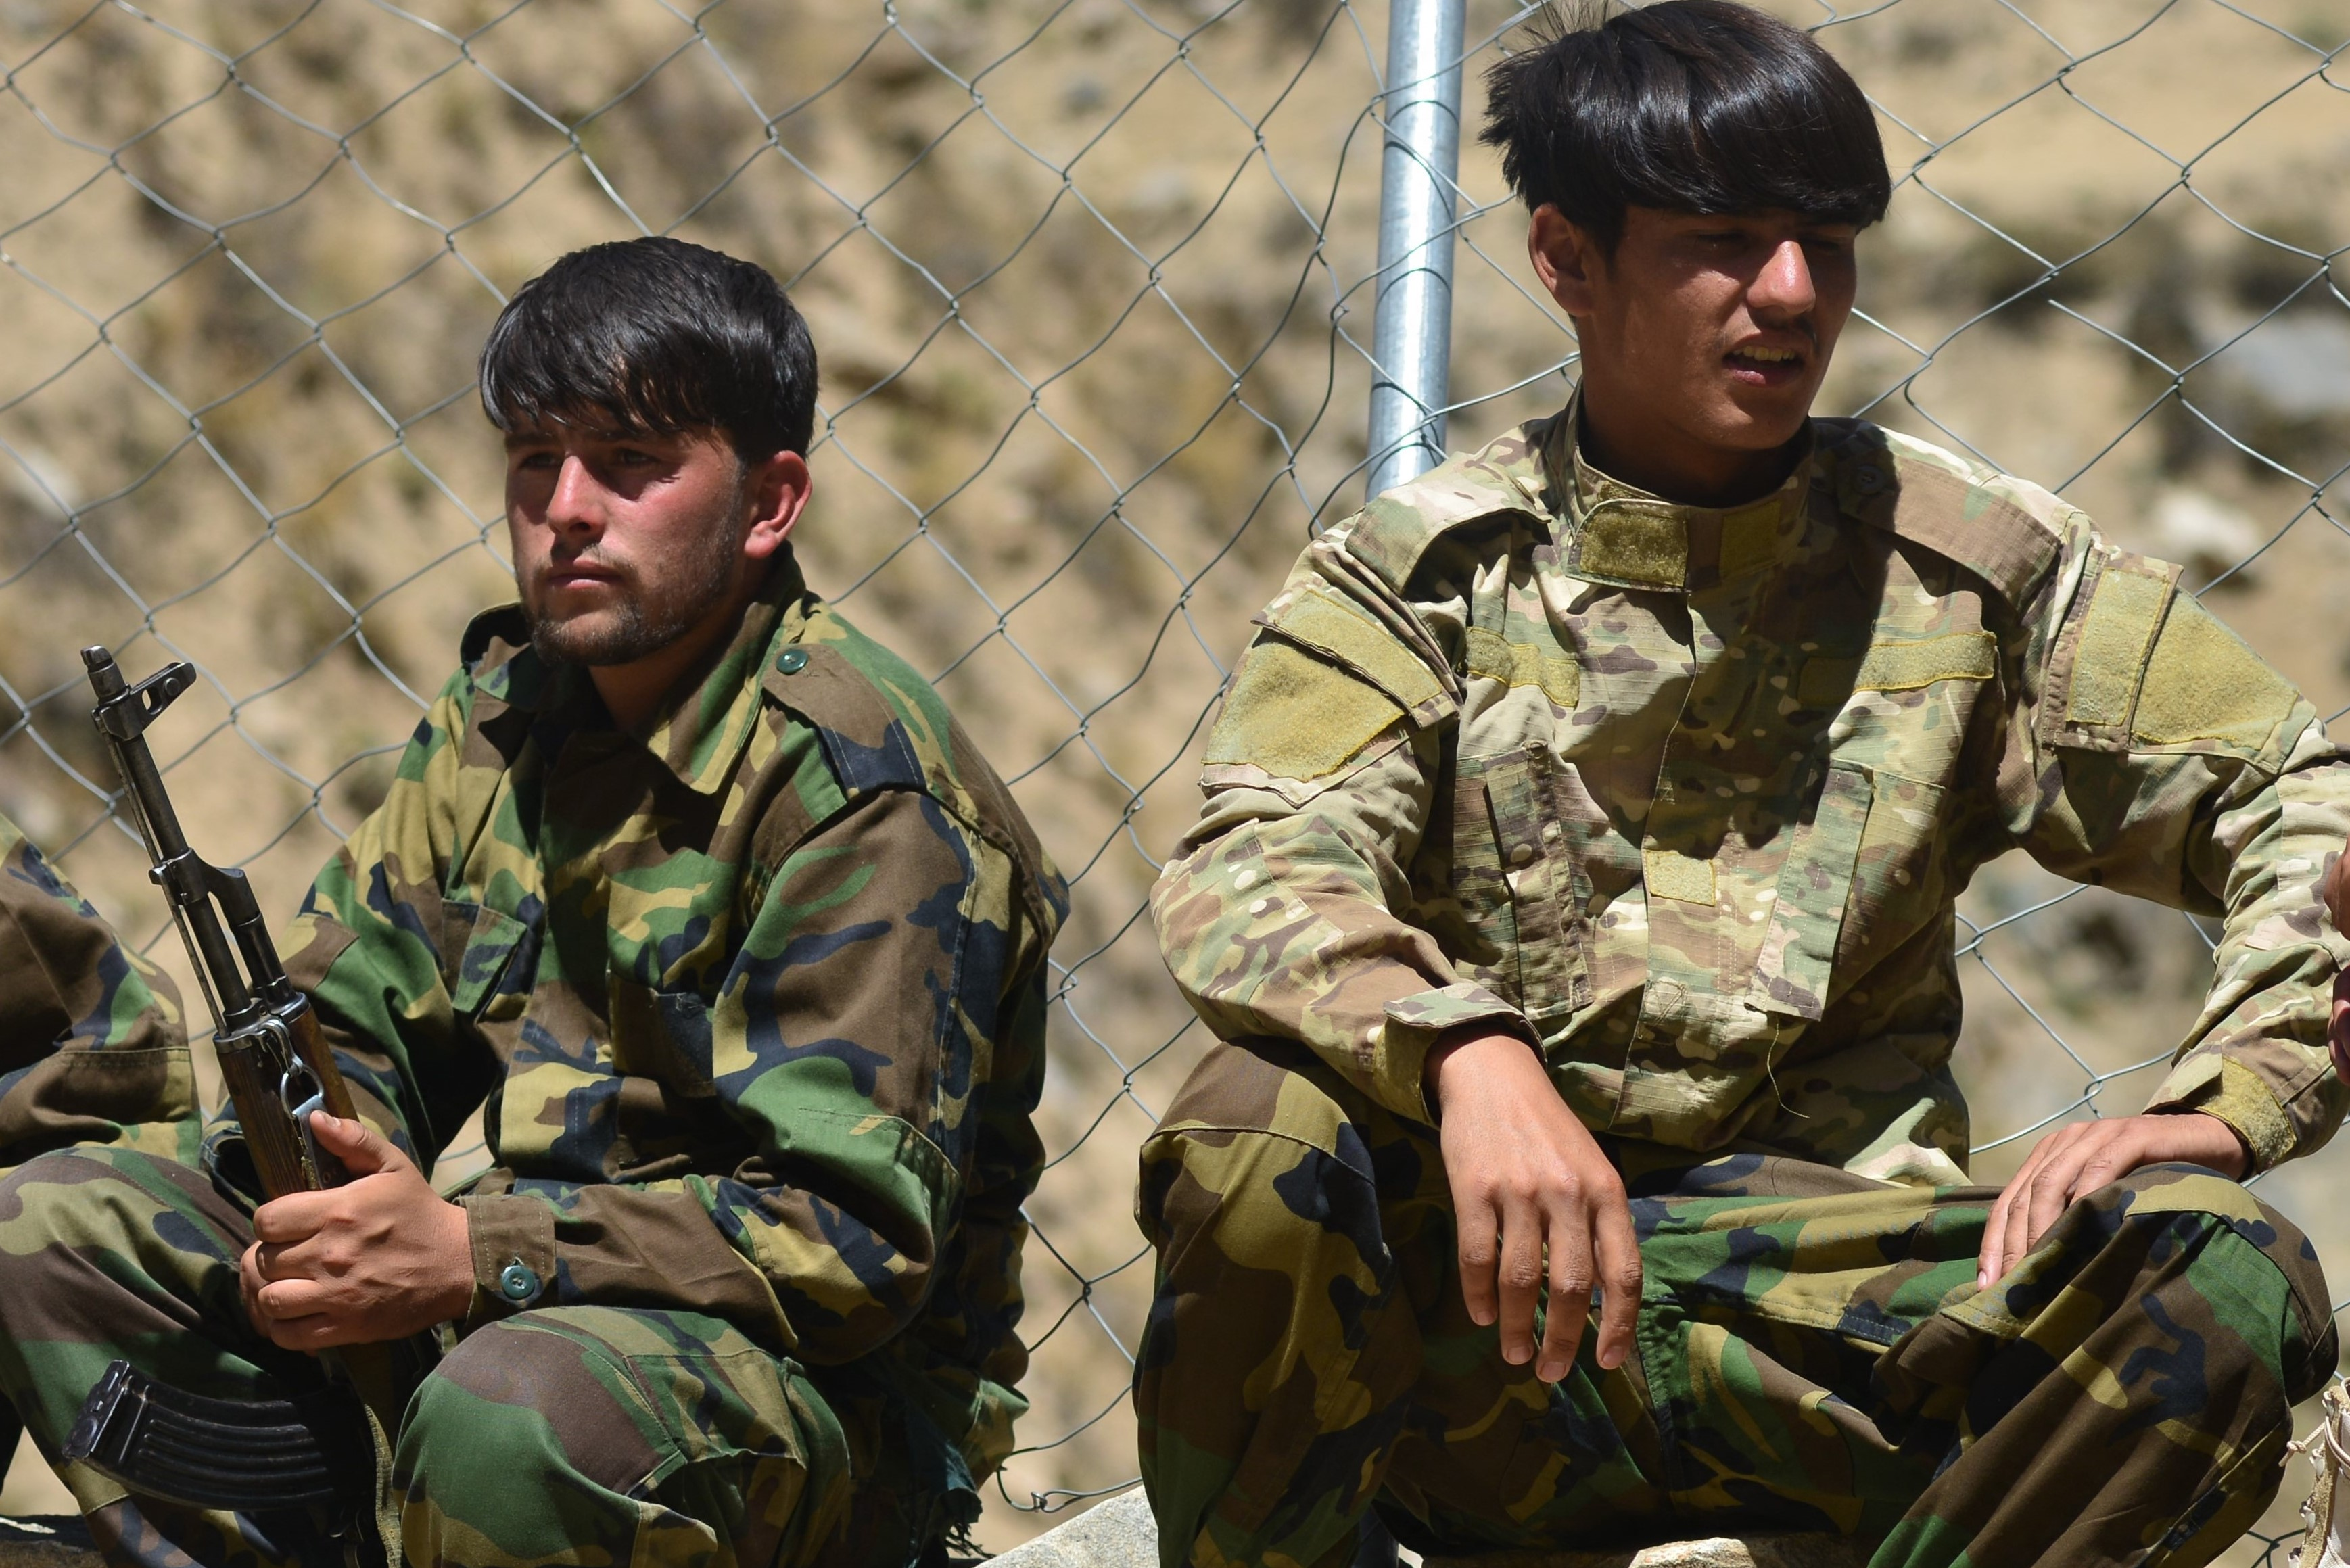 Afghan resistance movement and anti-Taliban uprising forces rest during military training at the Abdullah Khil area of Dara district in Panjshir province on August 24, 2021